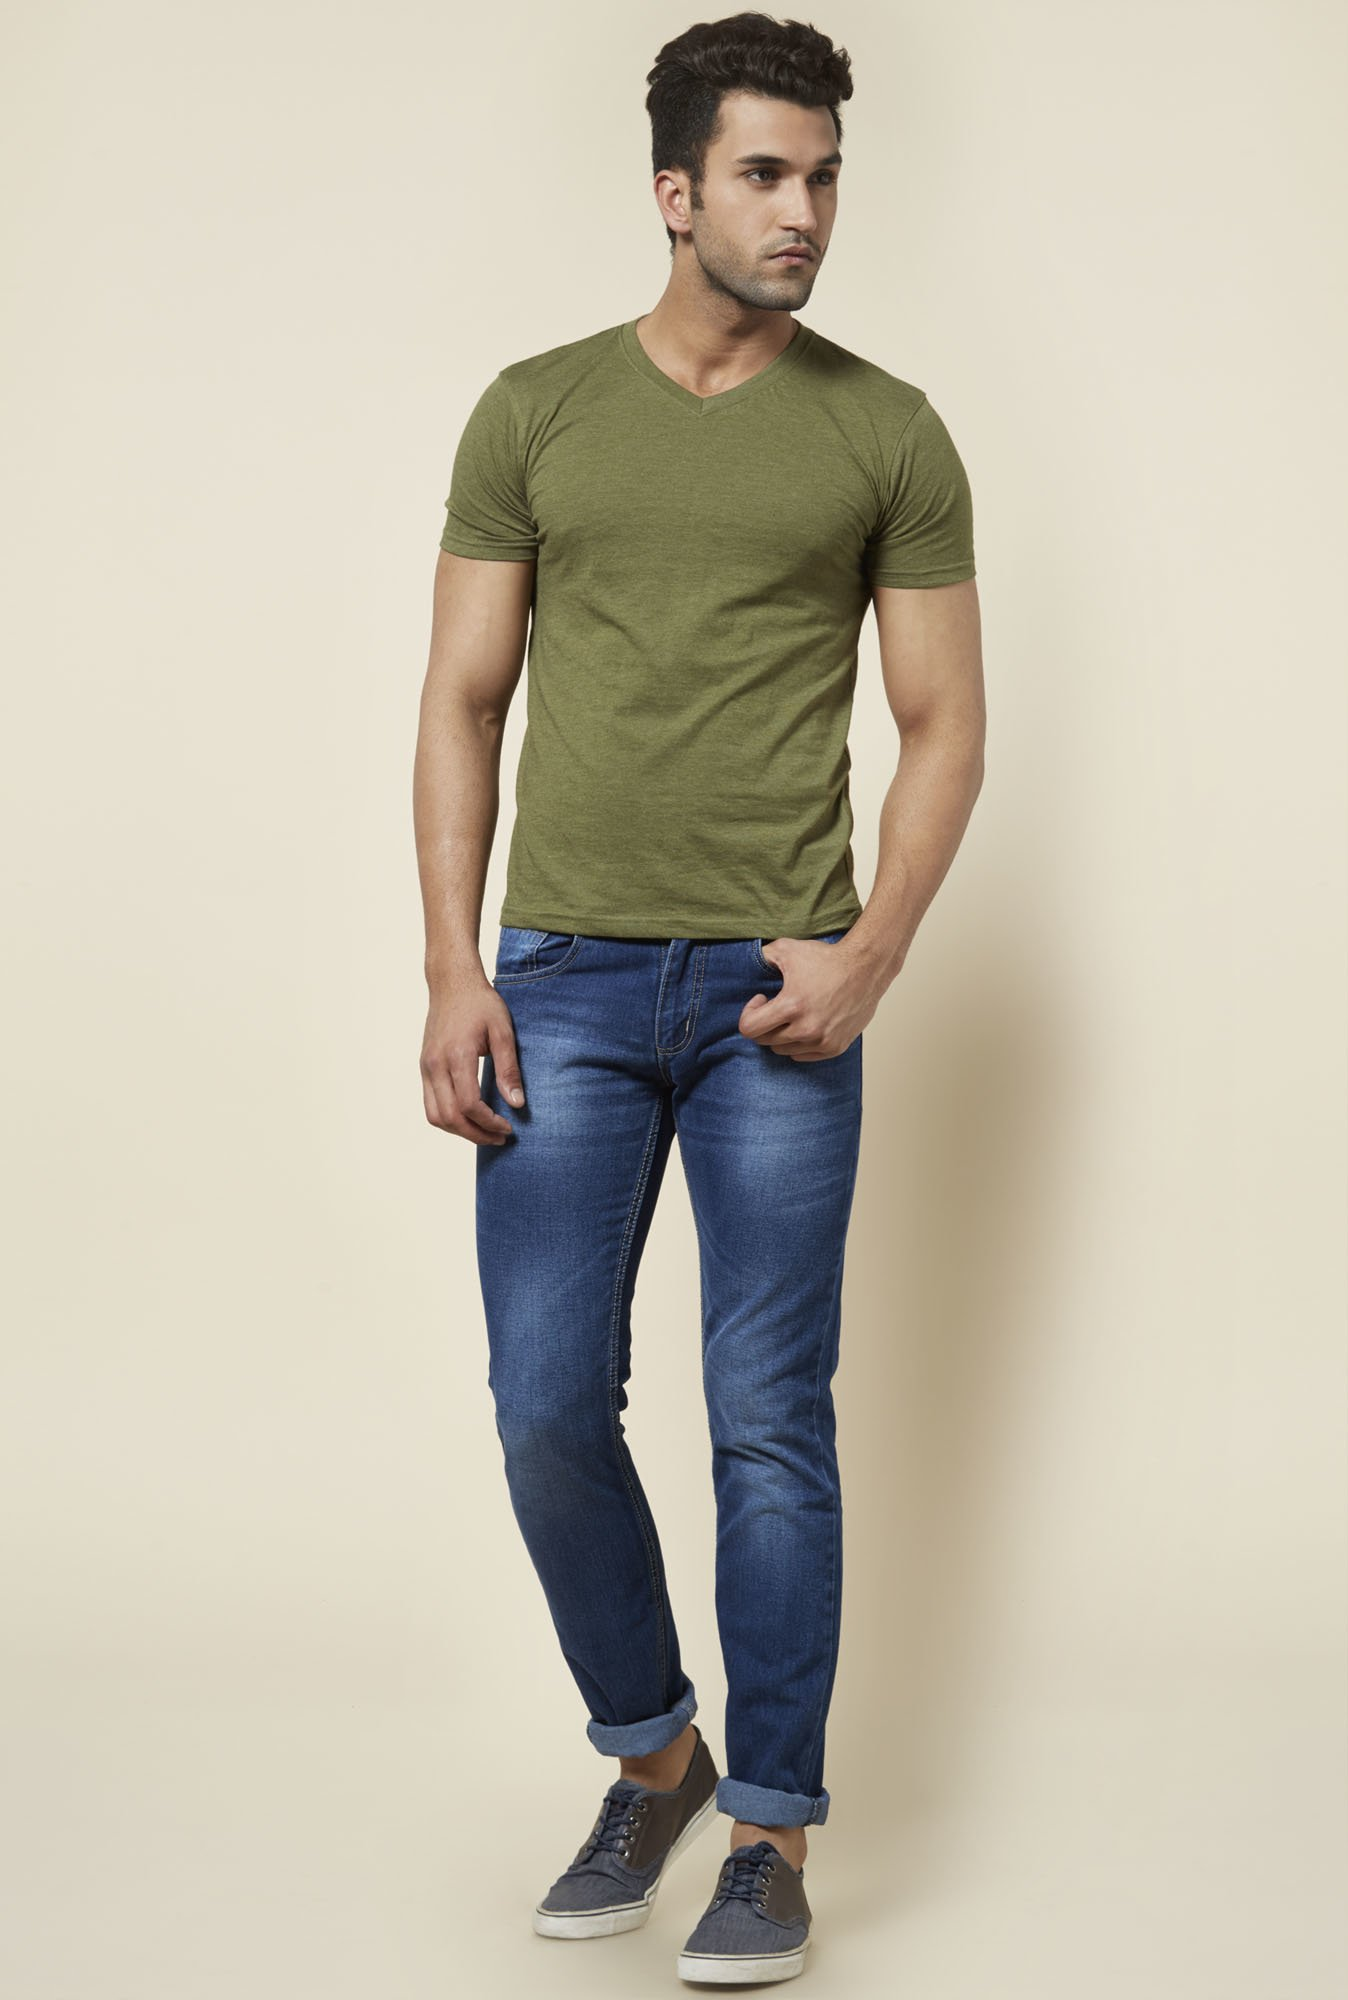 Zudio Olive Solid T Shirt